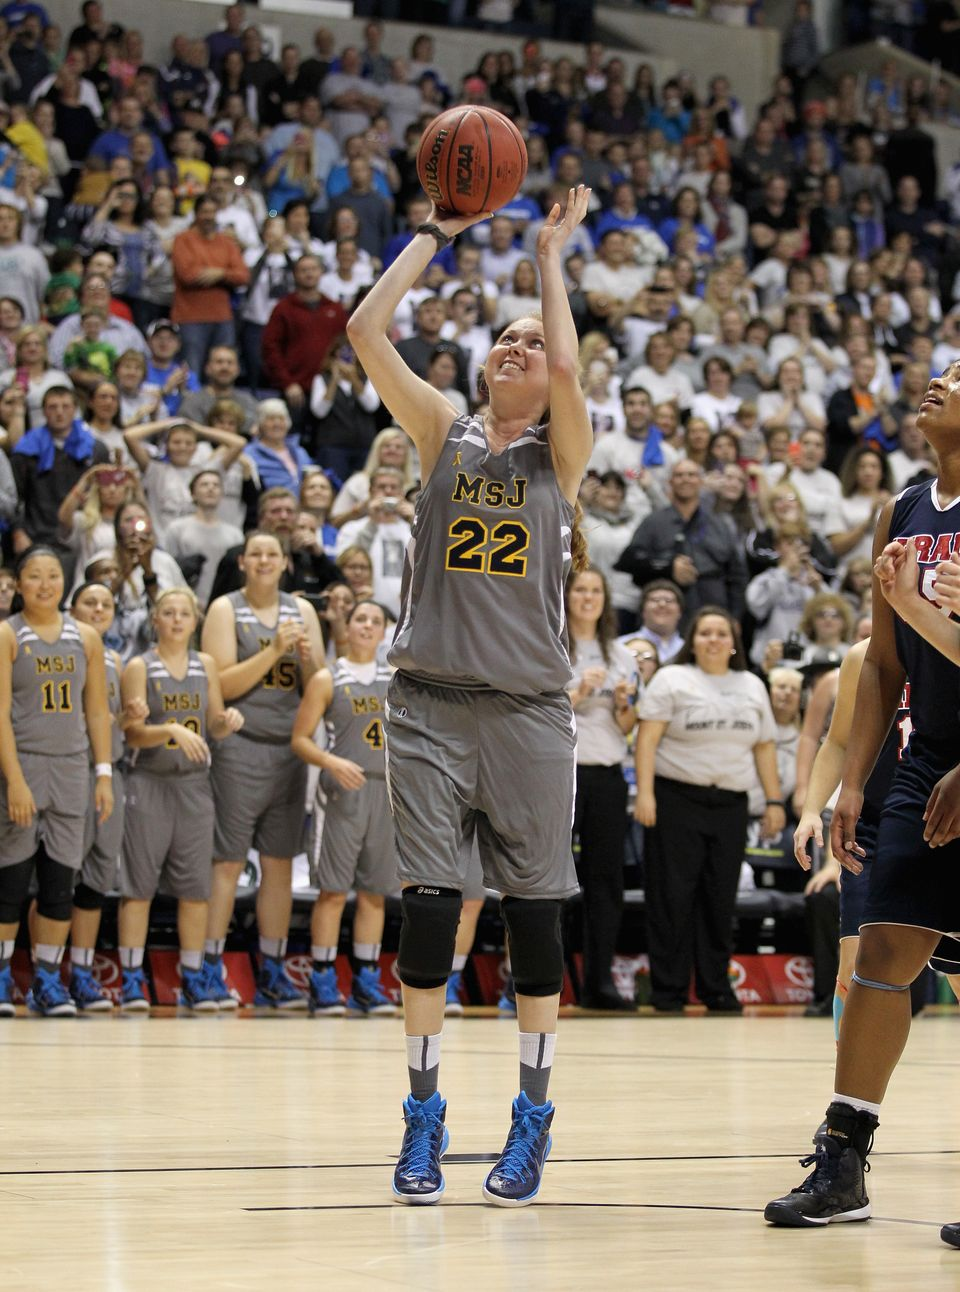 CINCINNATI, OH - NOVEMBER 02:  Lauren Hill of Mount St. Joseph shoots to score her second basket during the game against Hira